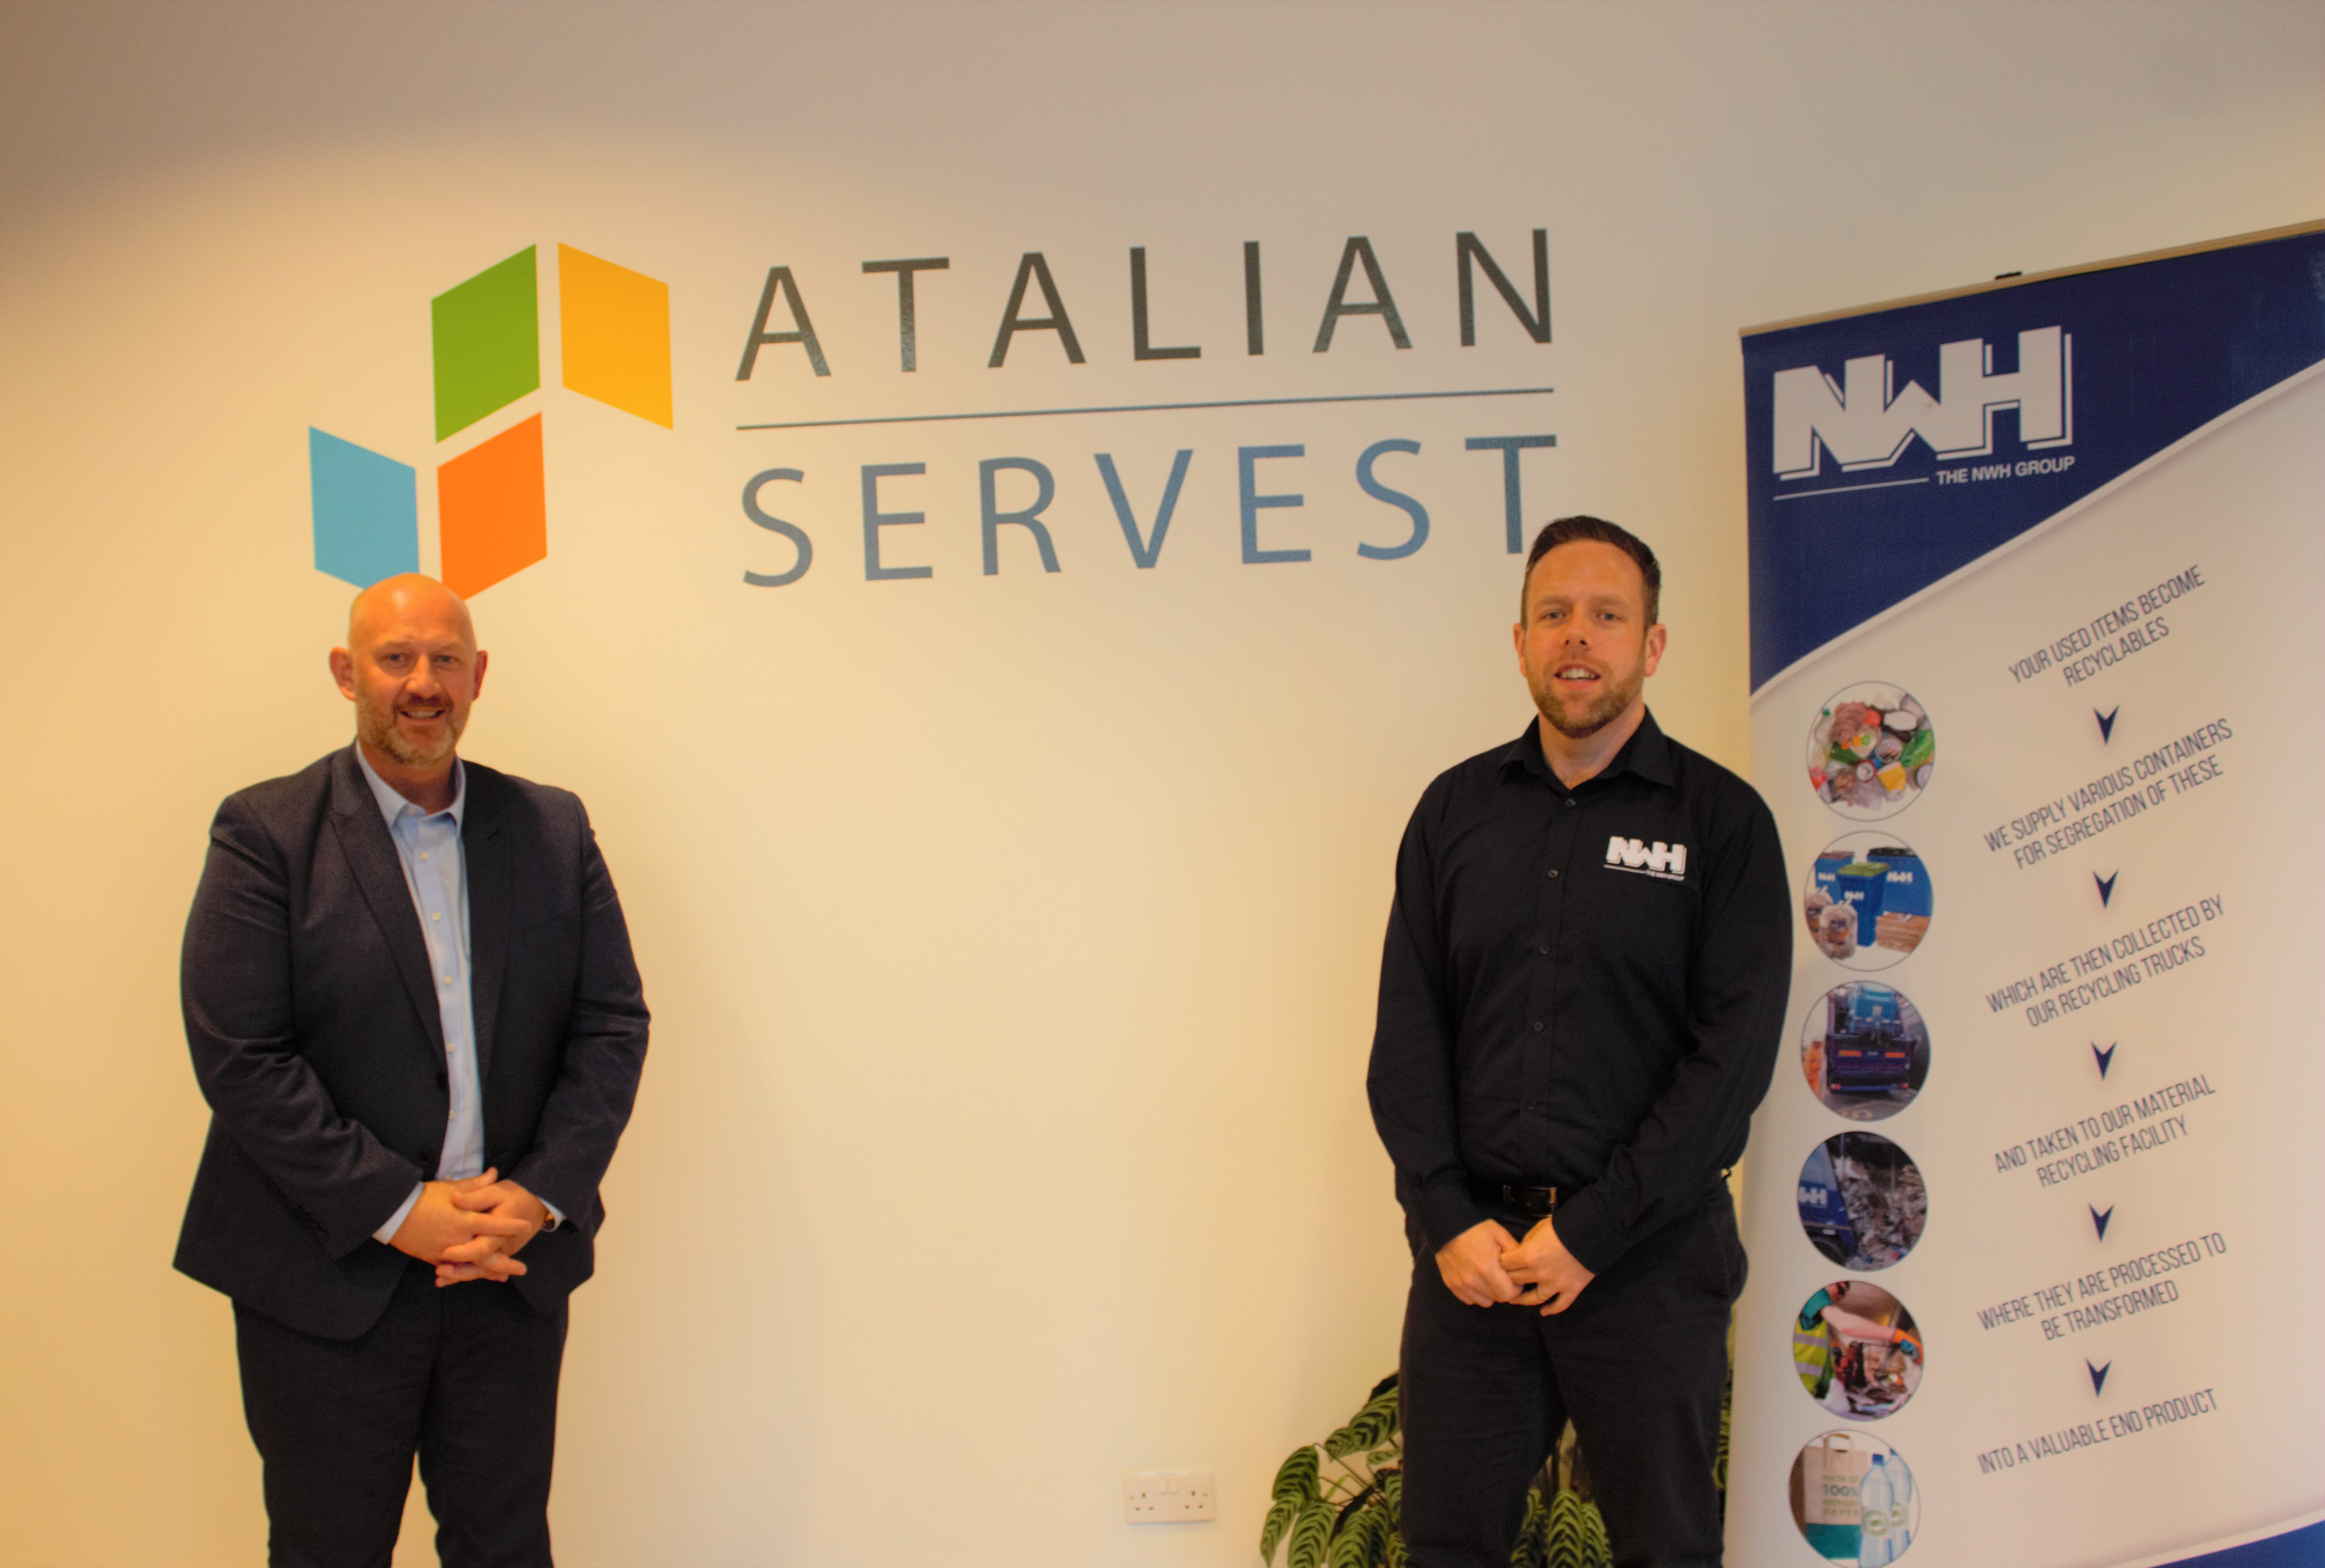 NWH secures waste contract with global solutions provider Atalian Servest